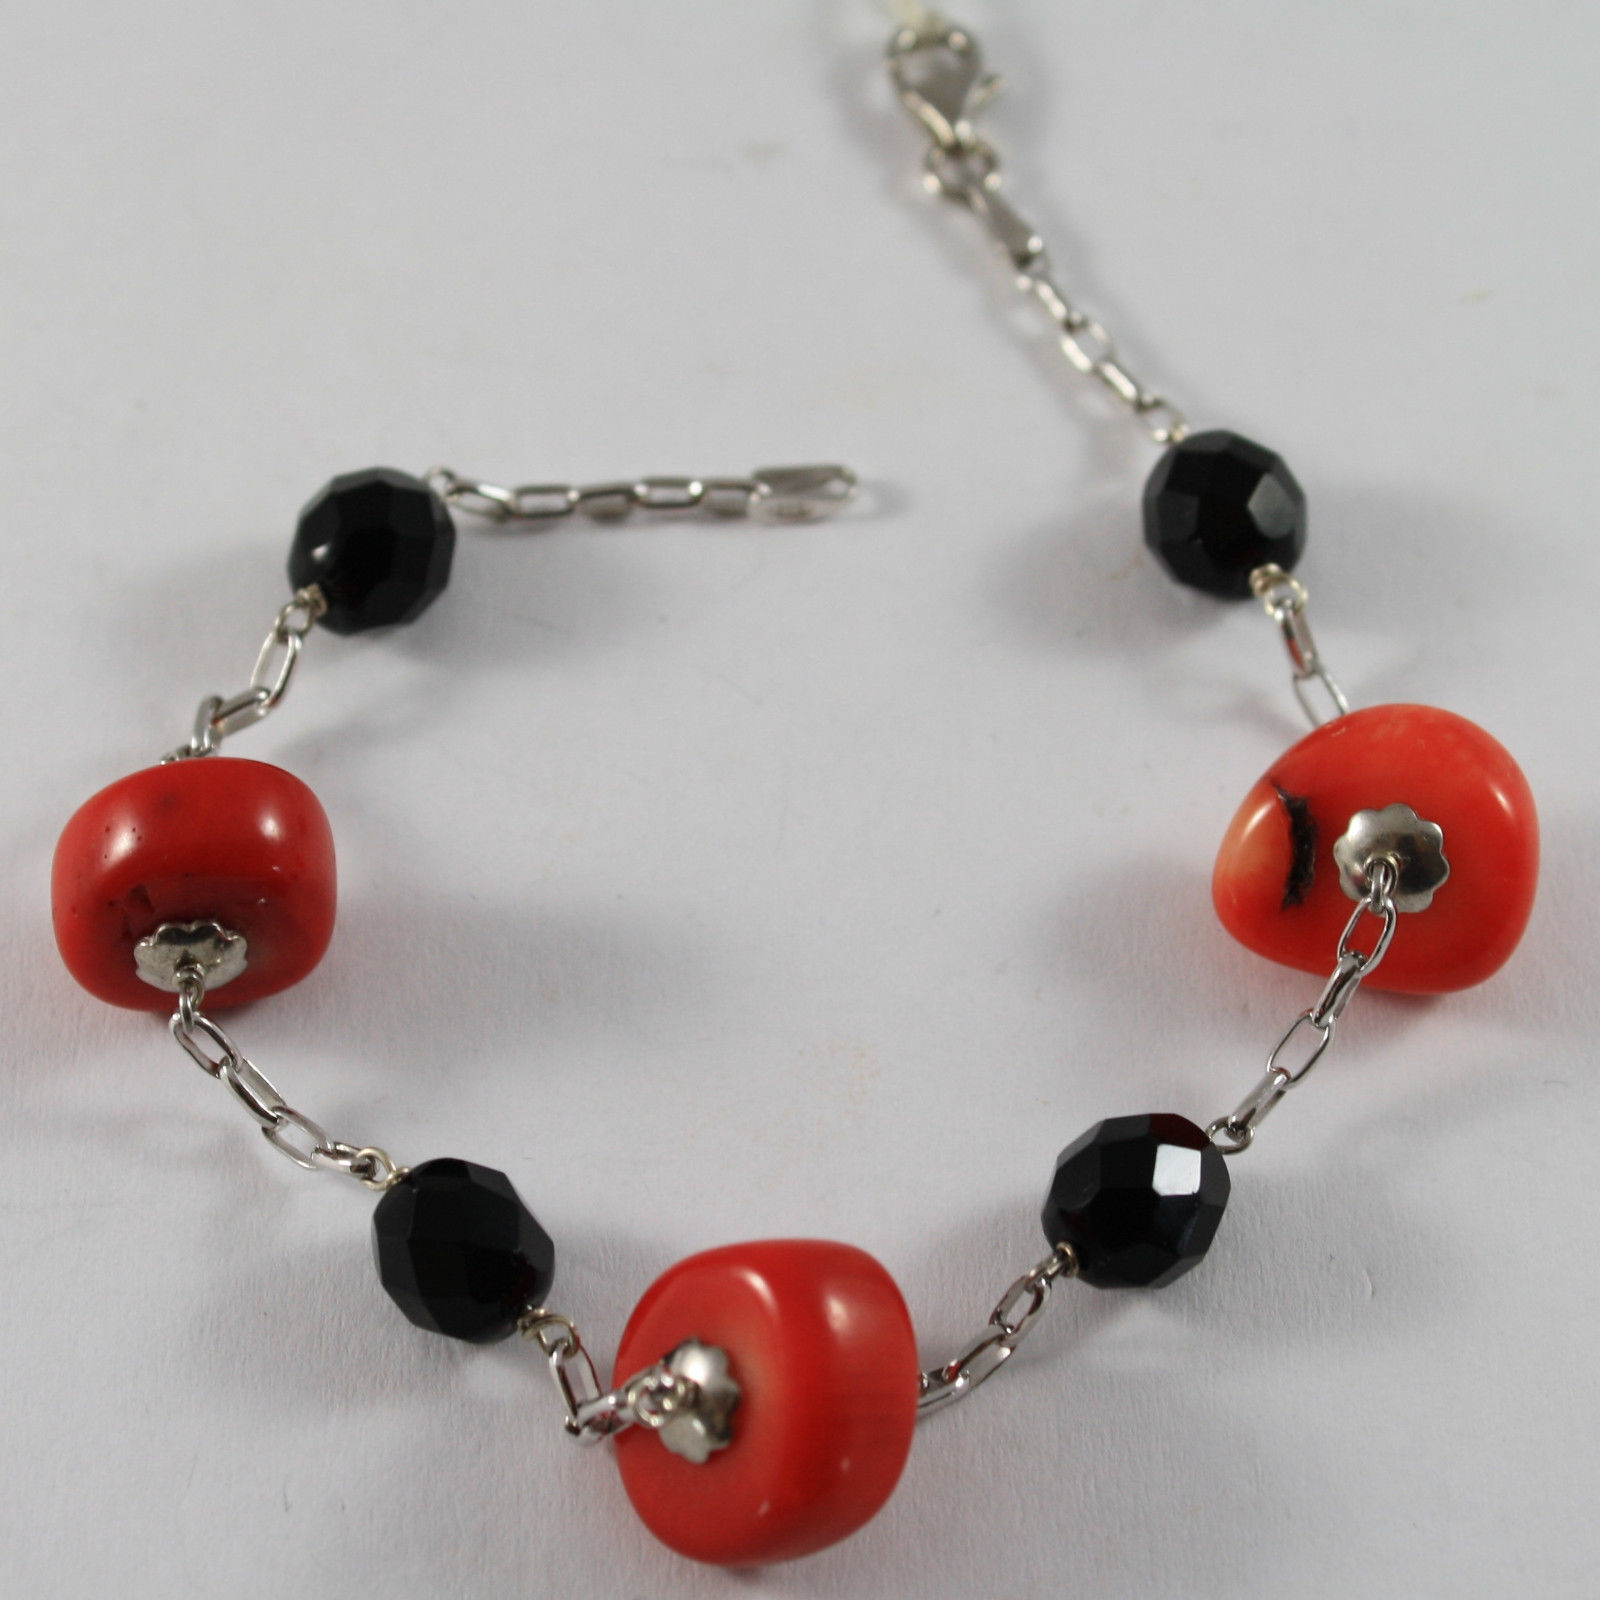 .925 RHODIUM SILVER BRACELET WITH BLACK ONYX AND DISCS OF CORAL BAMBOO